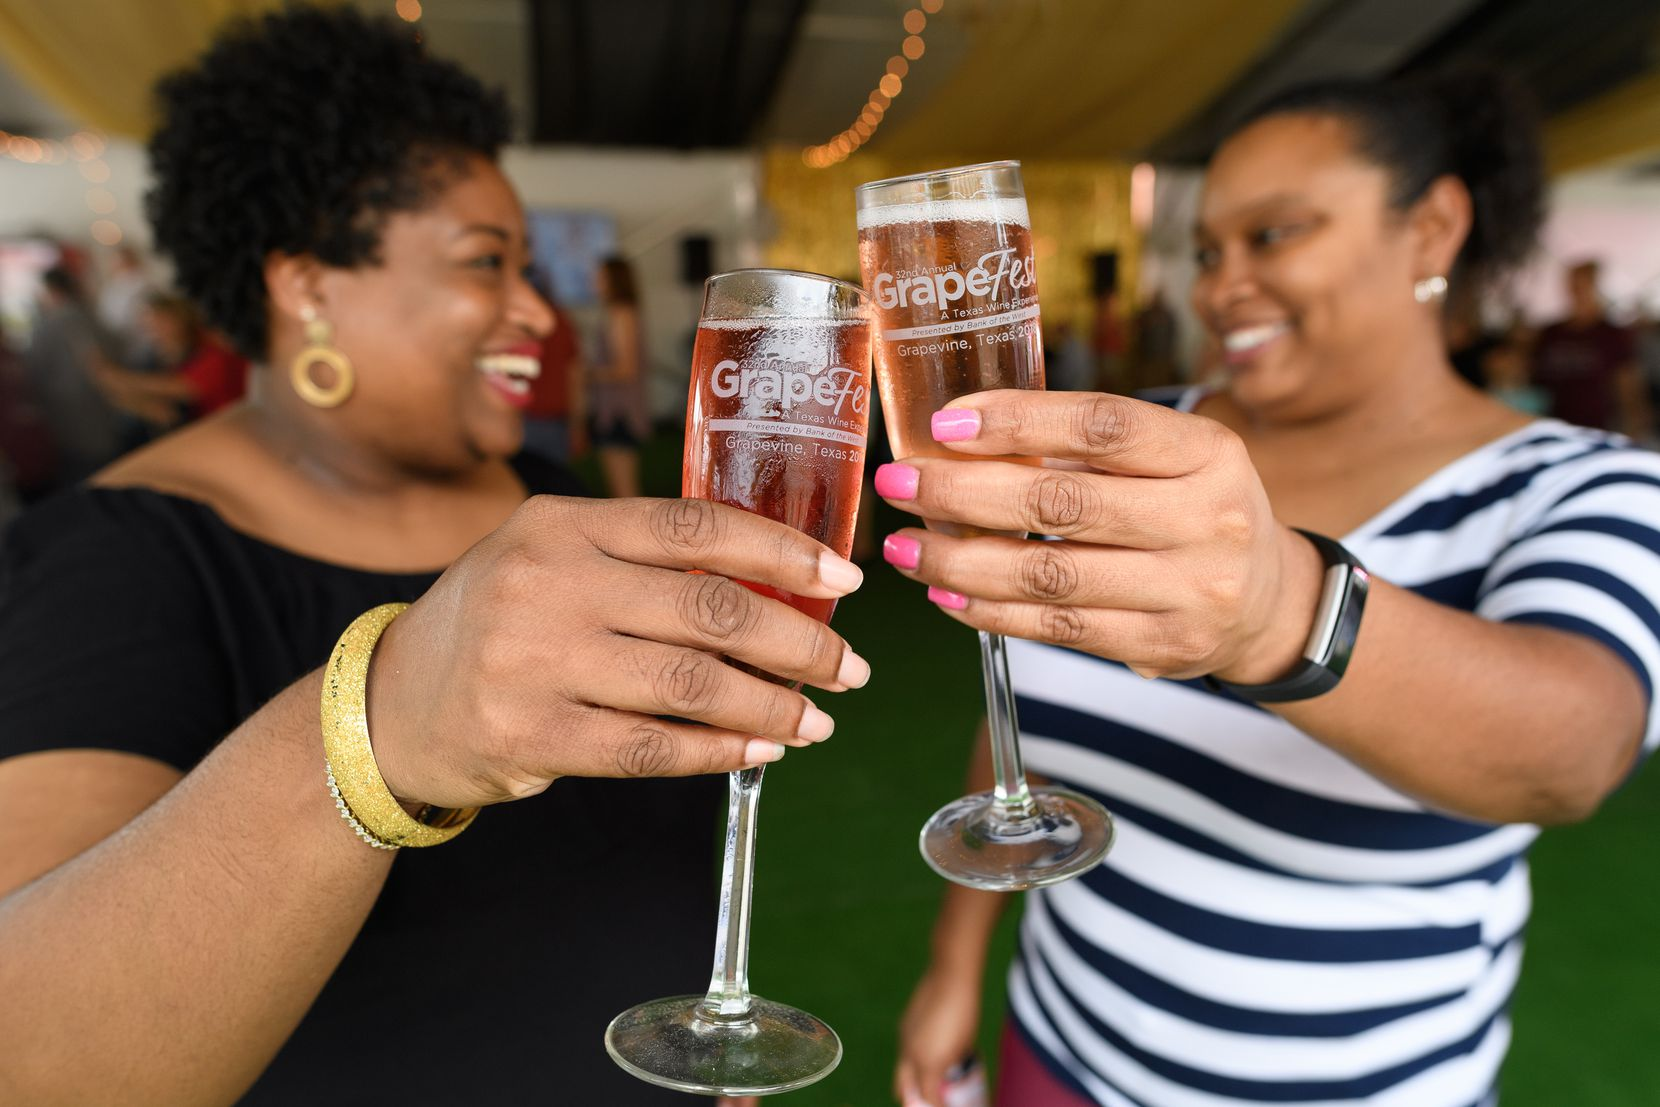 The 35th annual GrapeFest: A Texas Wine Experience will be held Sept. 16-19, 2021, in downtown Grapevine.